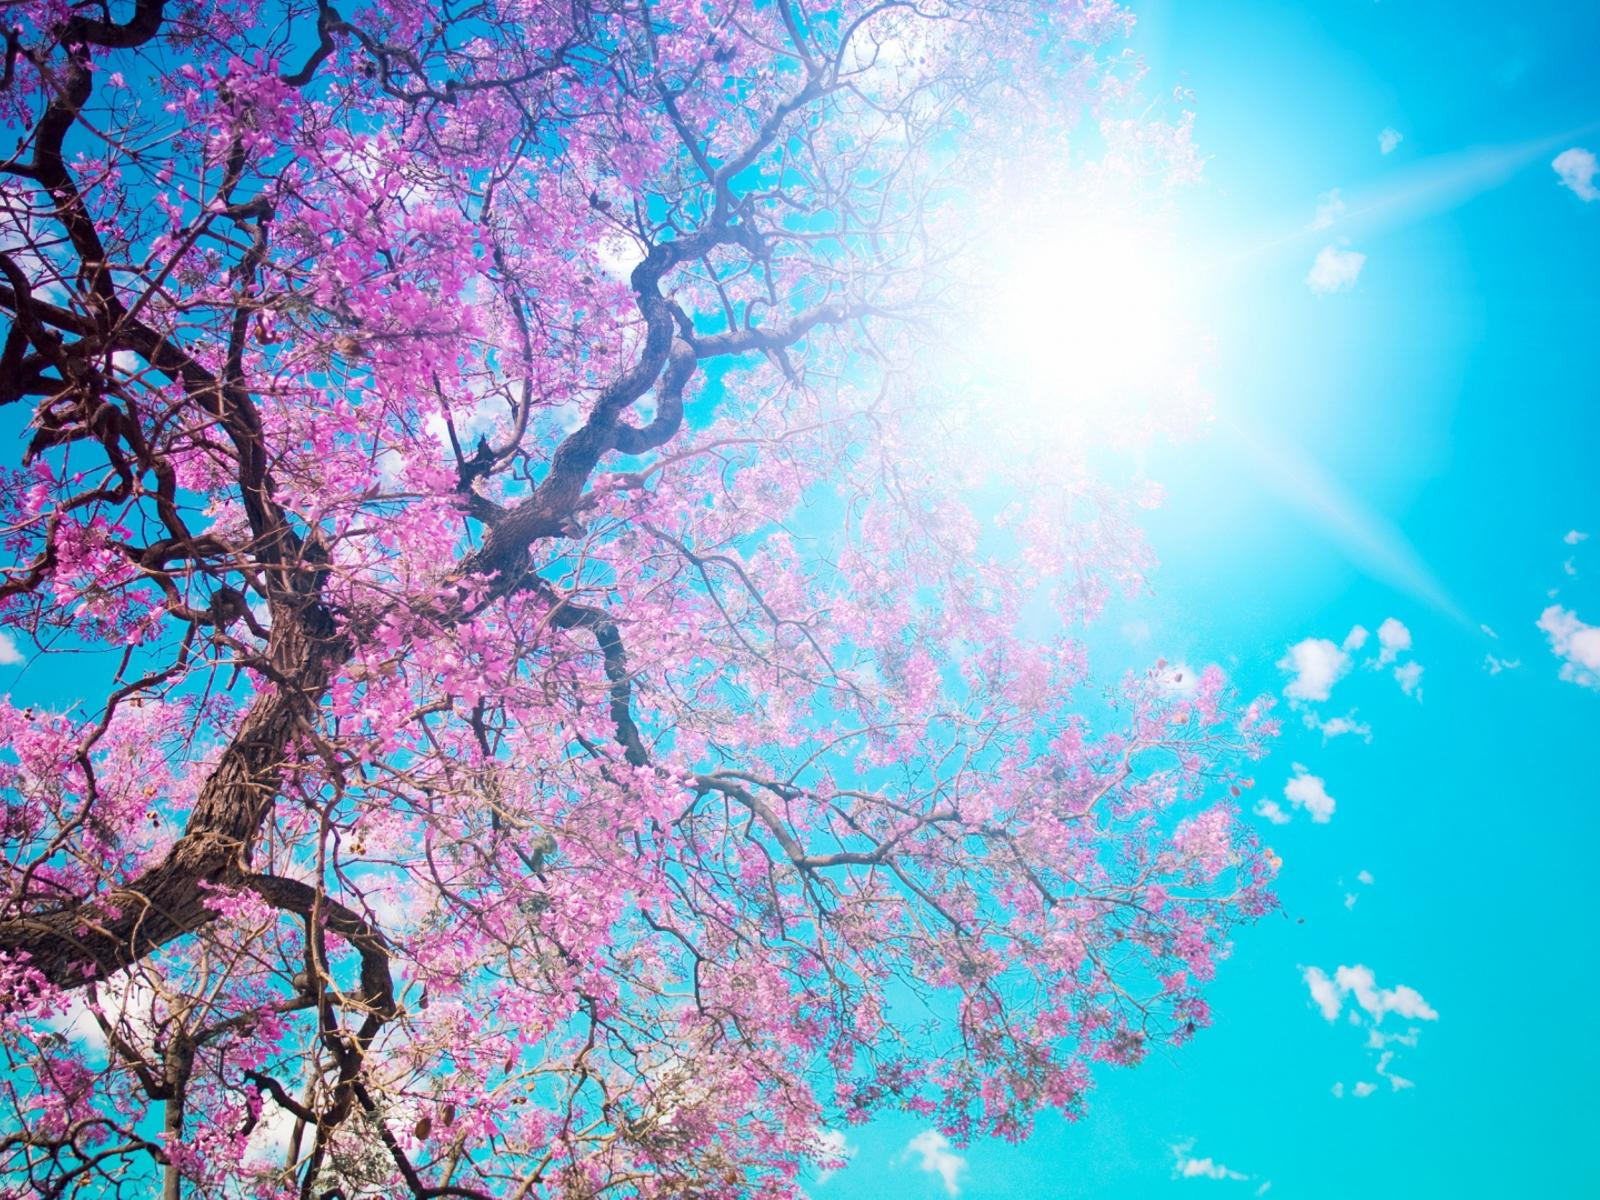 Branches With Pink Flowers In The Sunlight Wallpaper Download 1600x1200